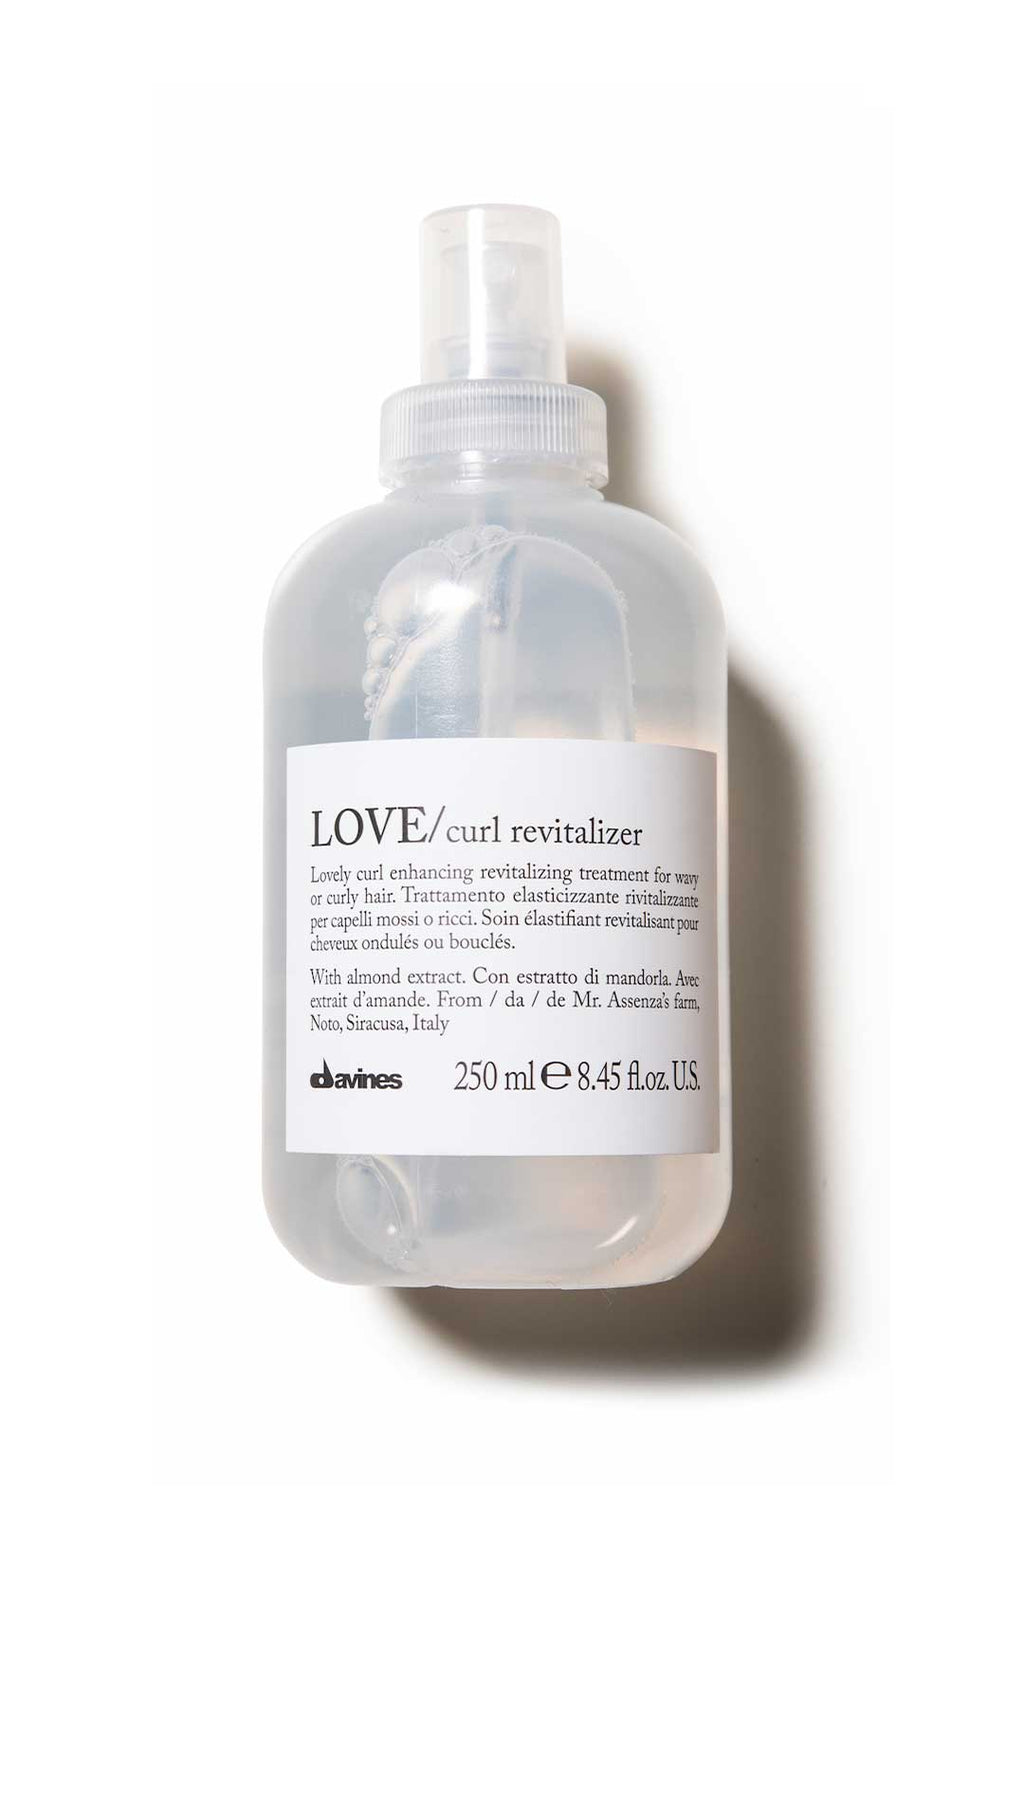 LOVE CURL REVITALIZER BOUCLES